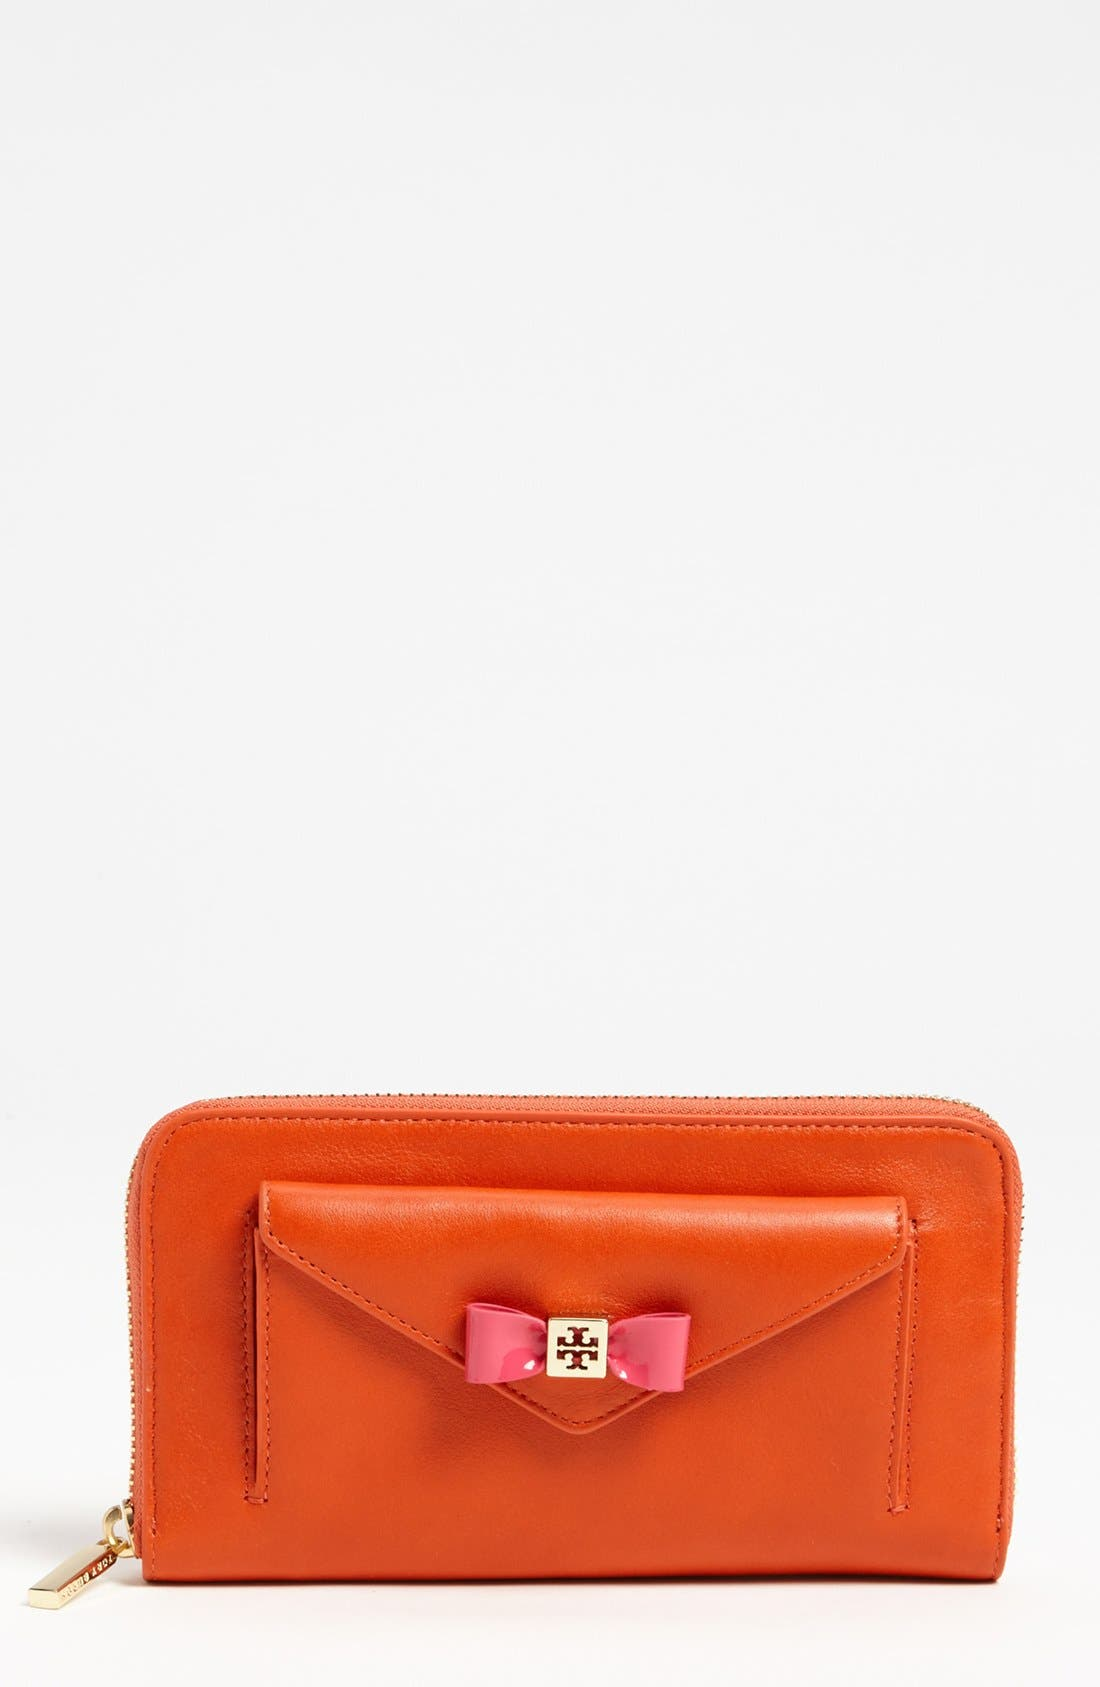 Alternate Image 1 Selected - Tory Burch 'Bow' Leather Zip Wallet